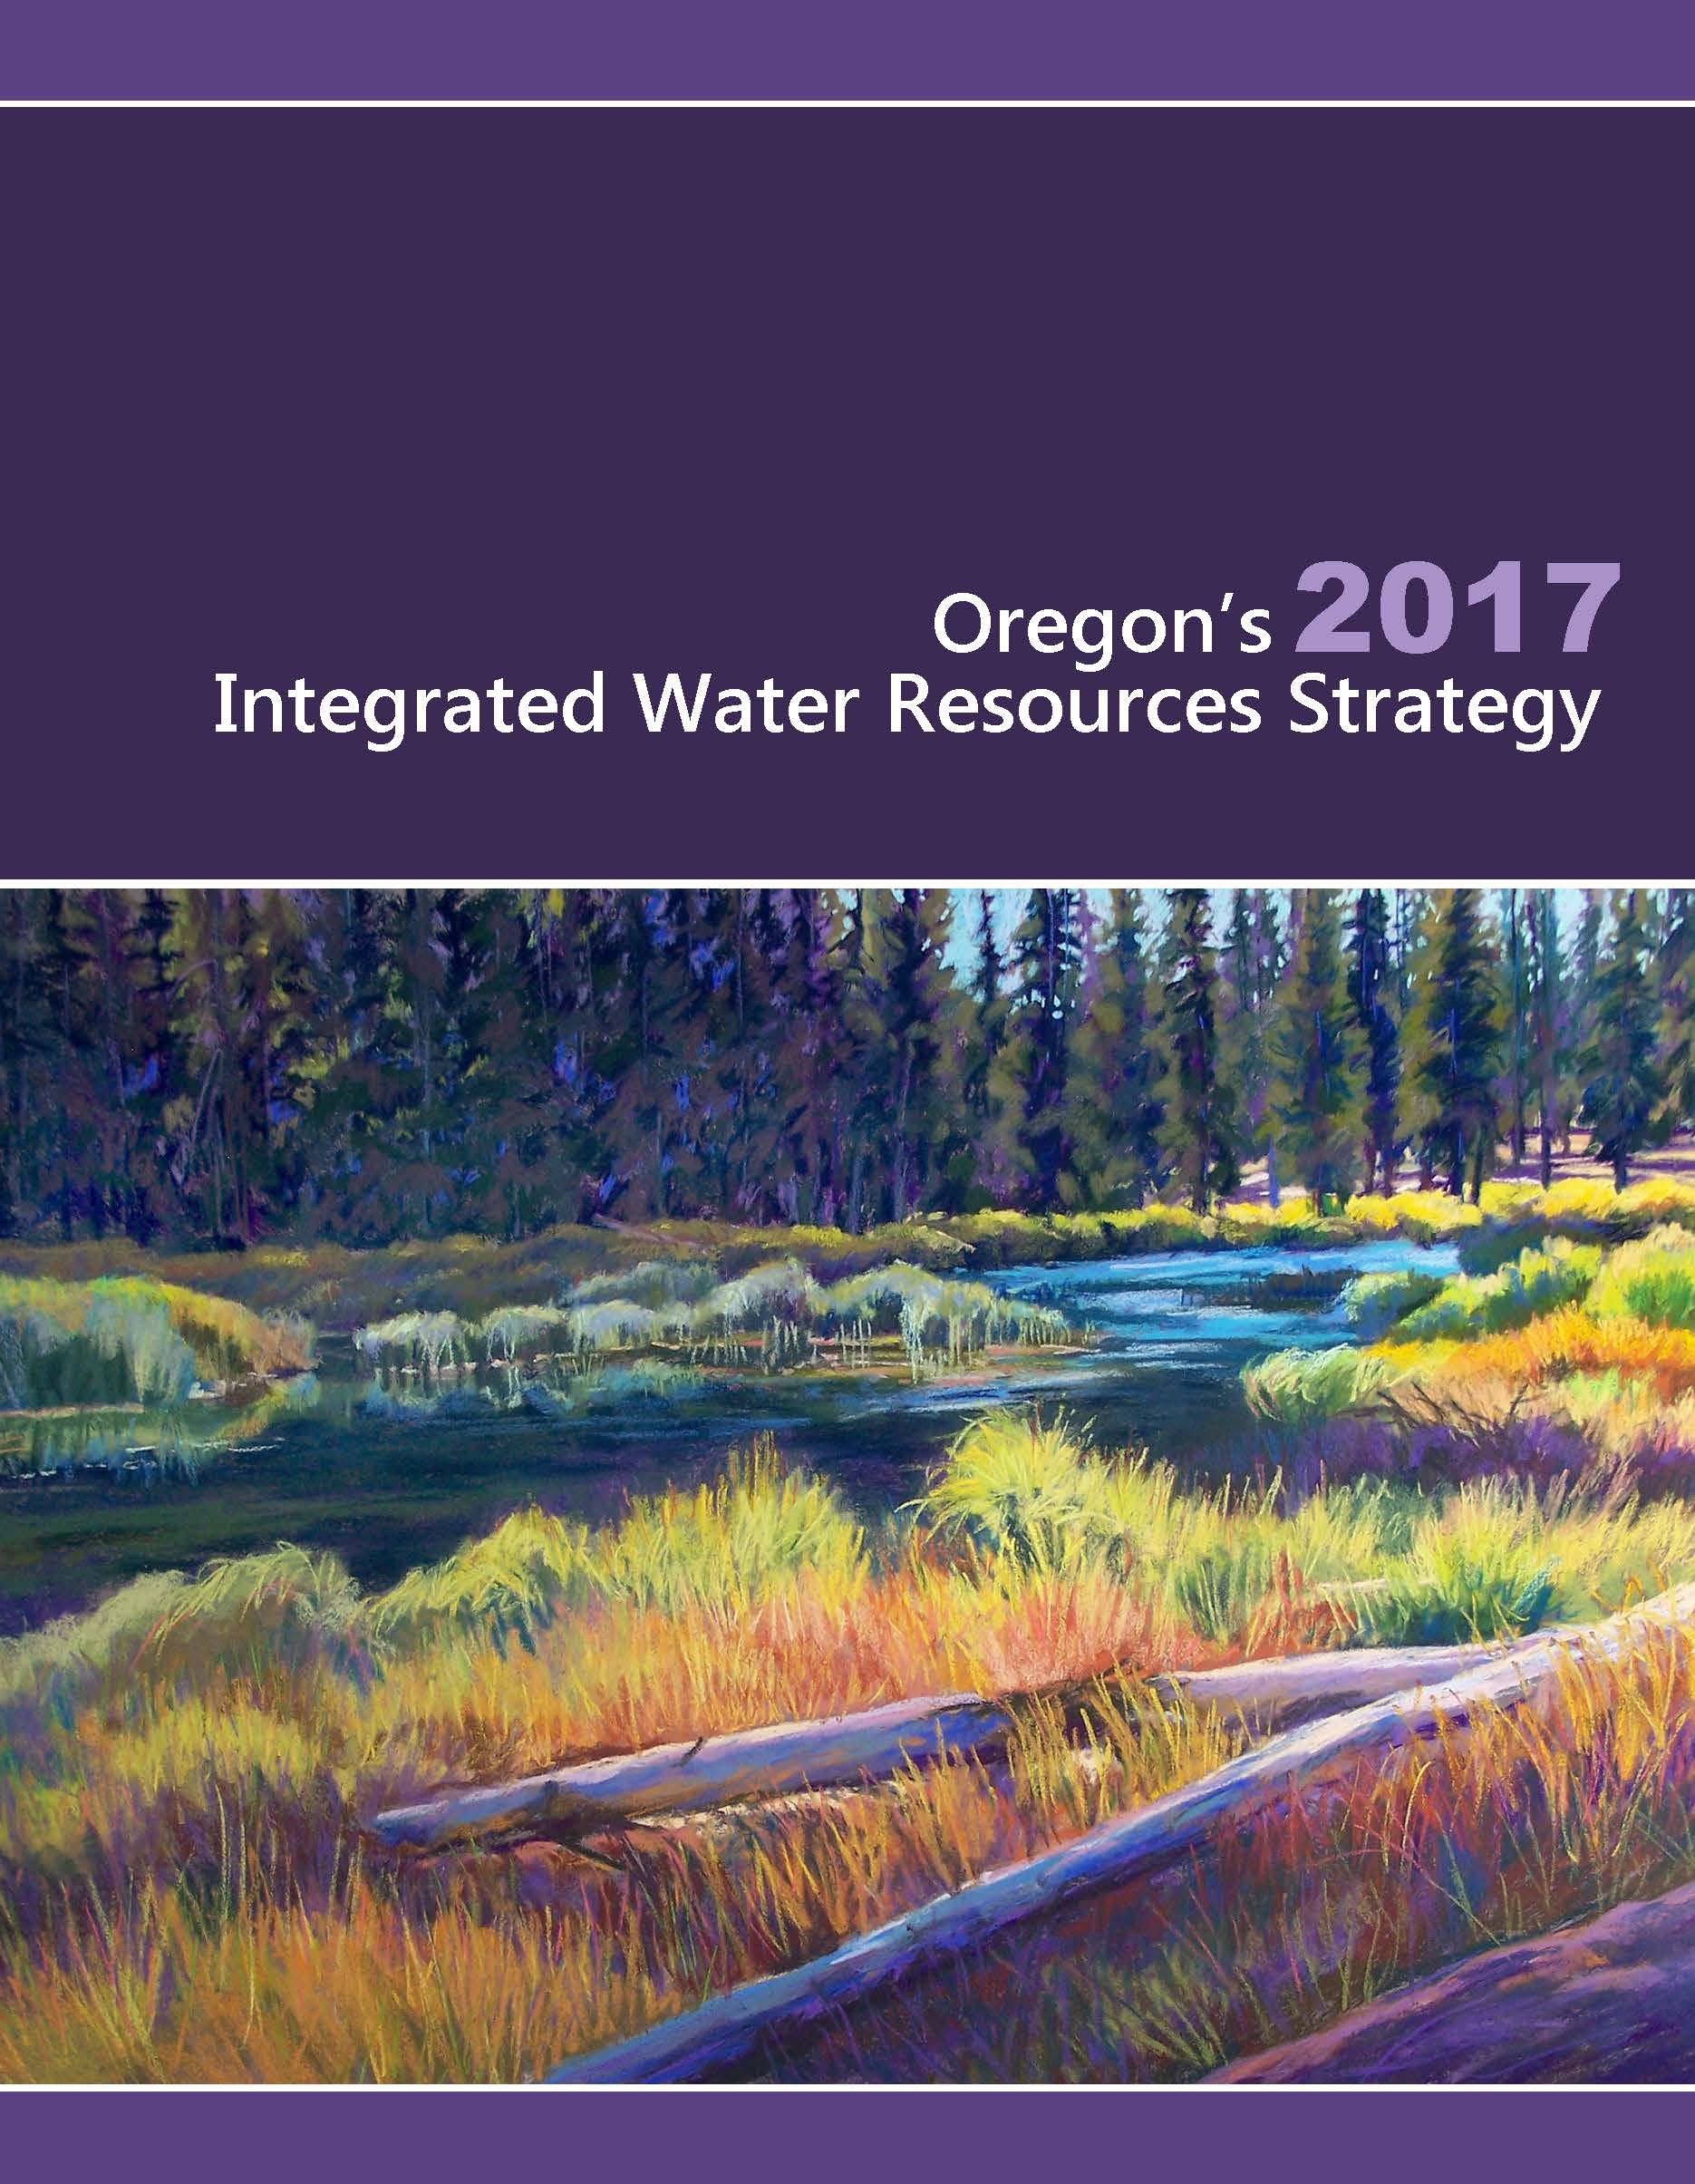 A photo of the cover page of the Integrated Water Resouces Strategy Publication